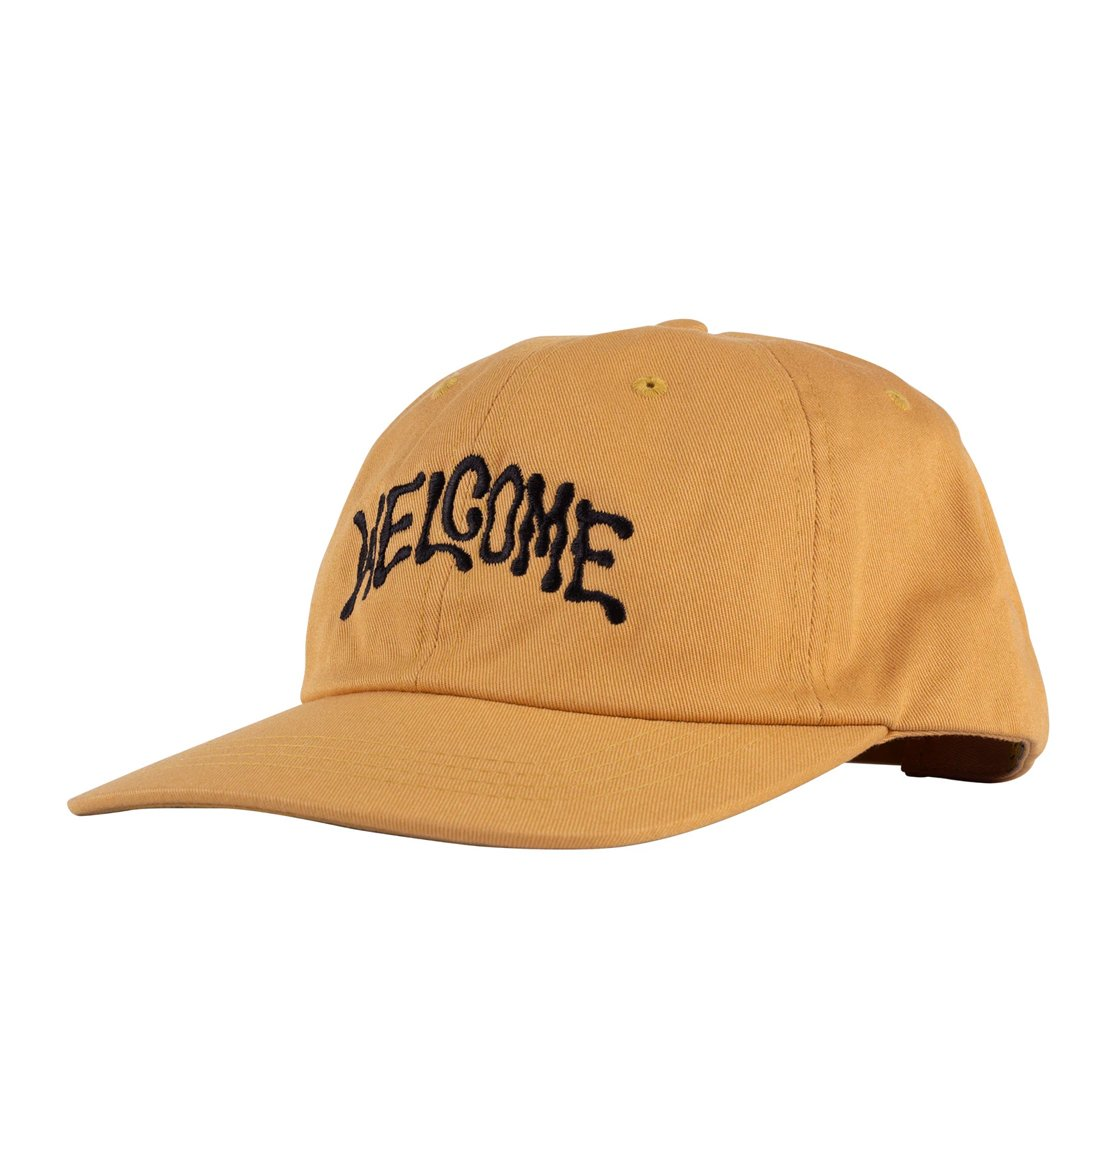 Welcome Droop Unstructured Snapback Hat